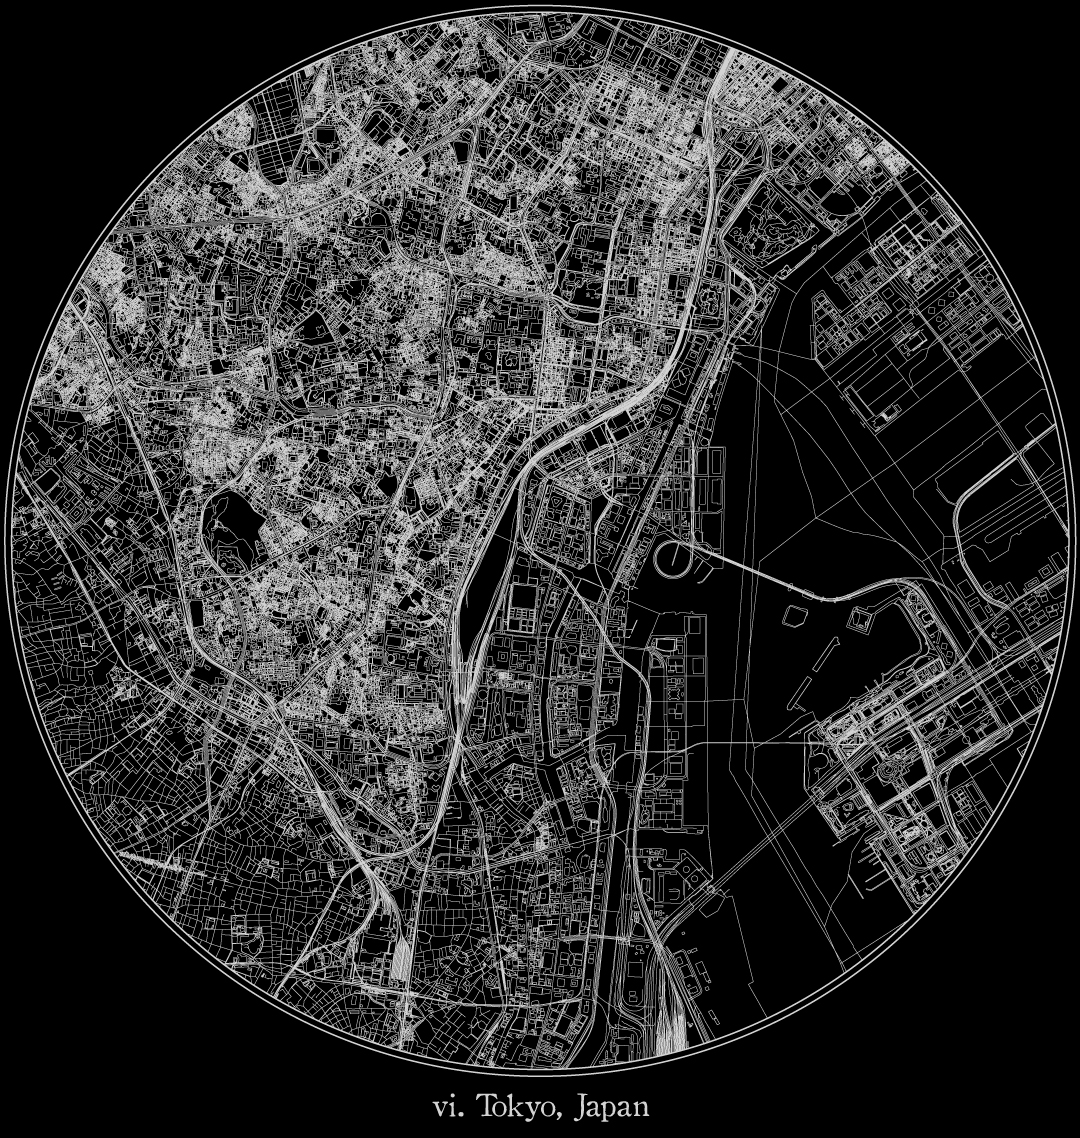 City map illustration of Tokyo created using Maperitive, OpenStreetMap and Adobe Illustrator.